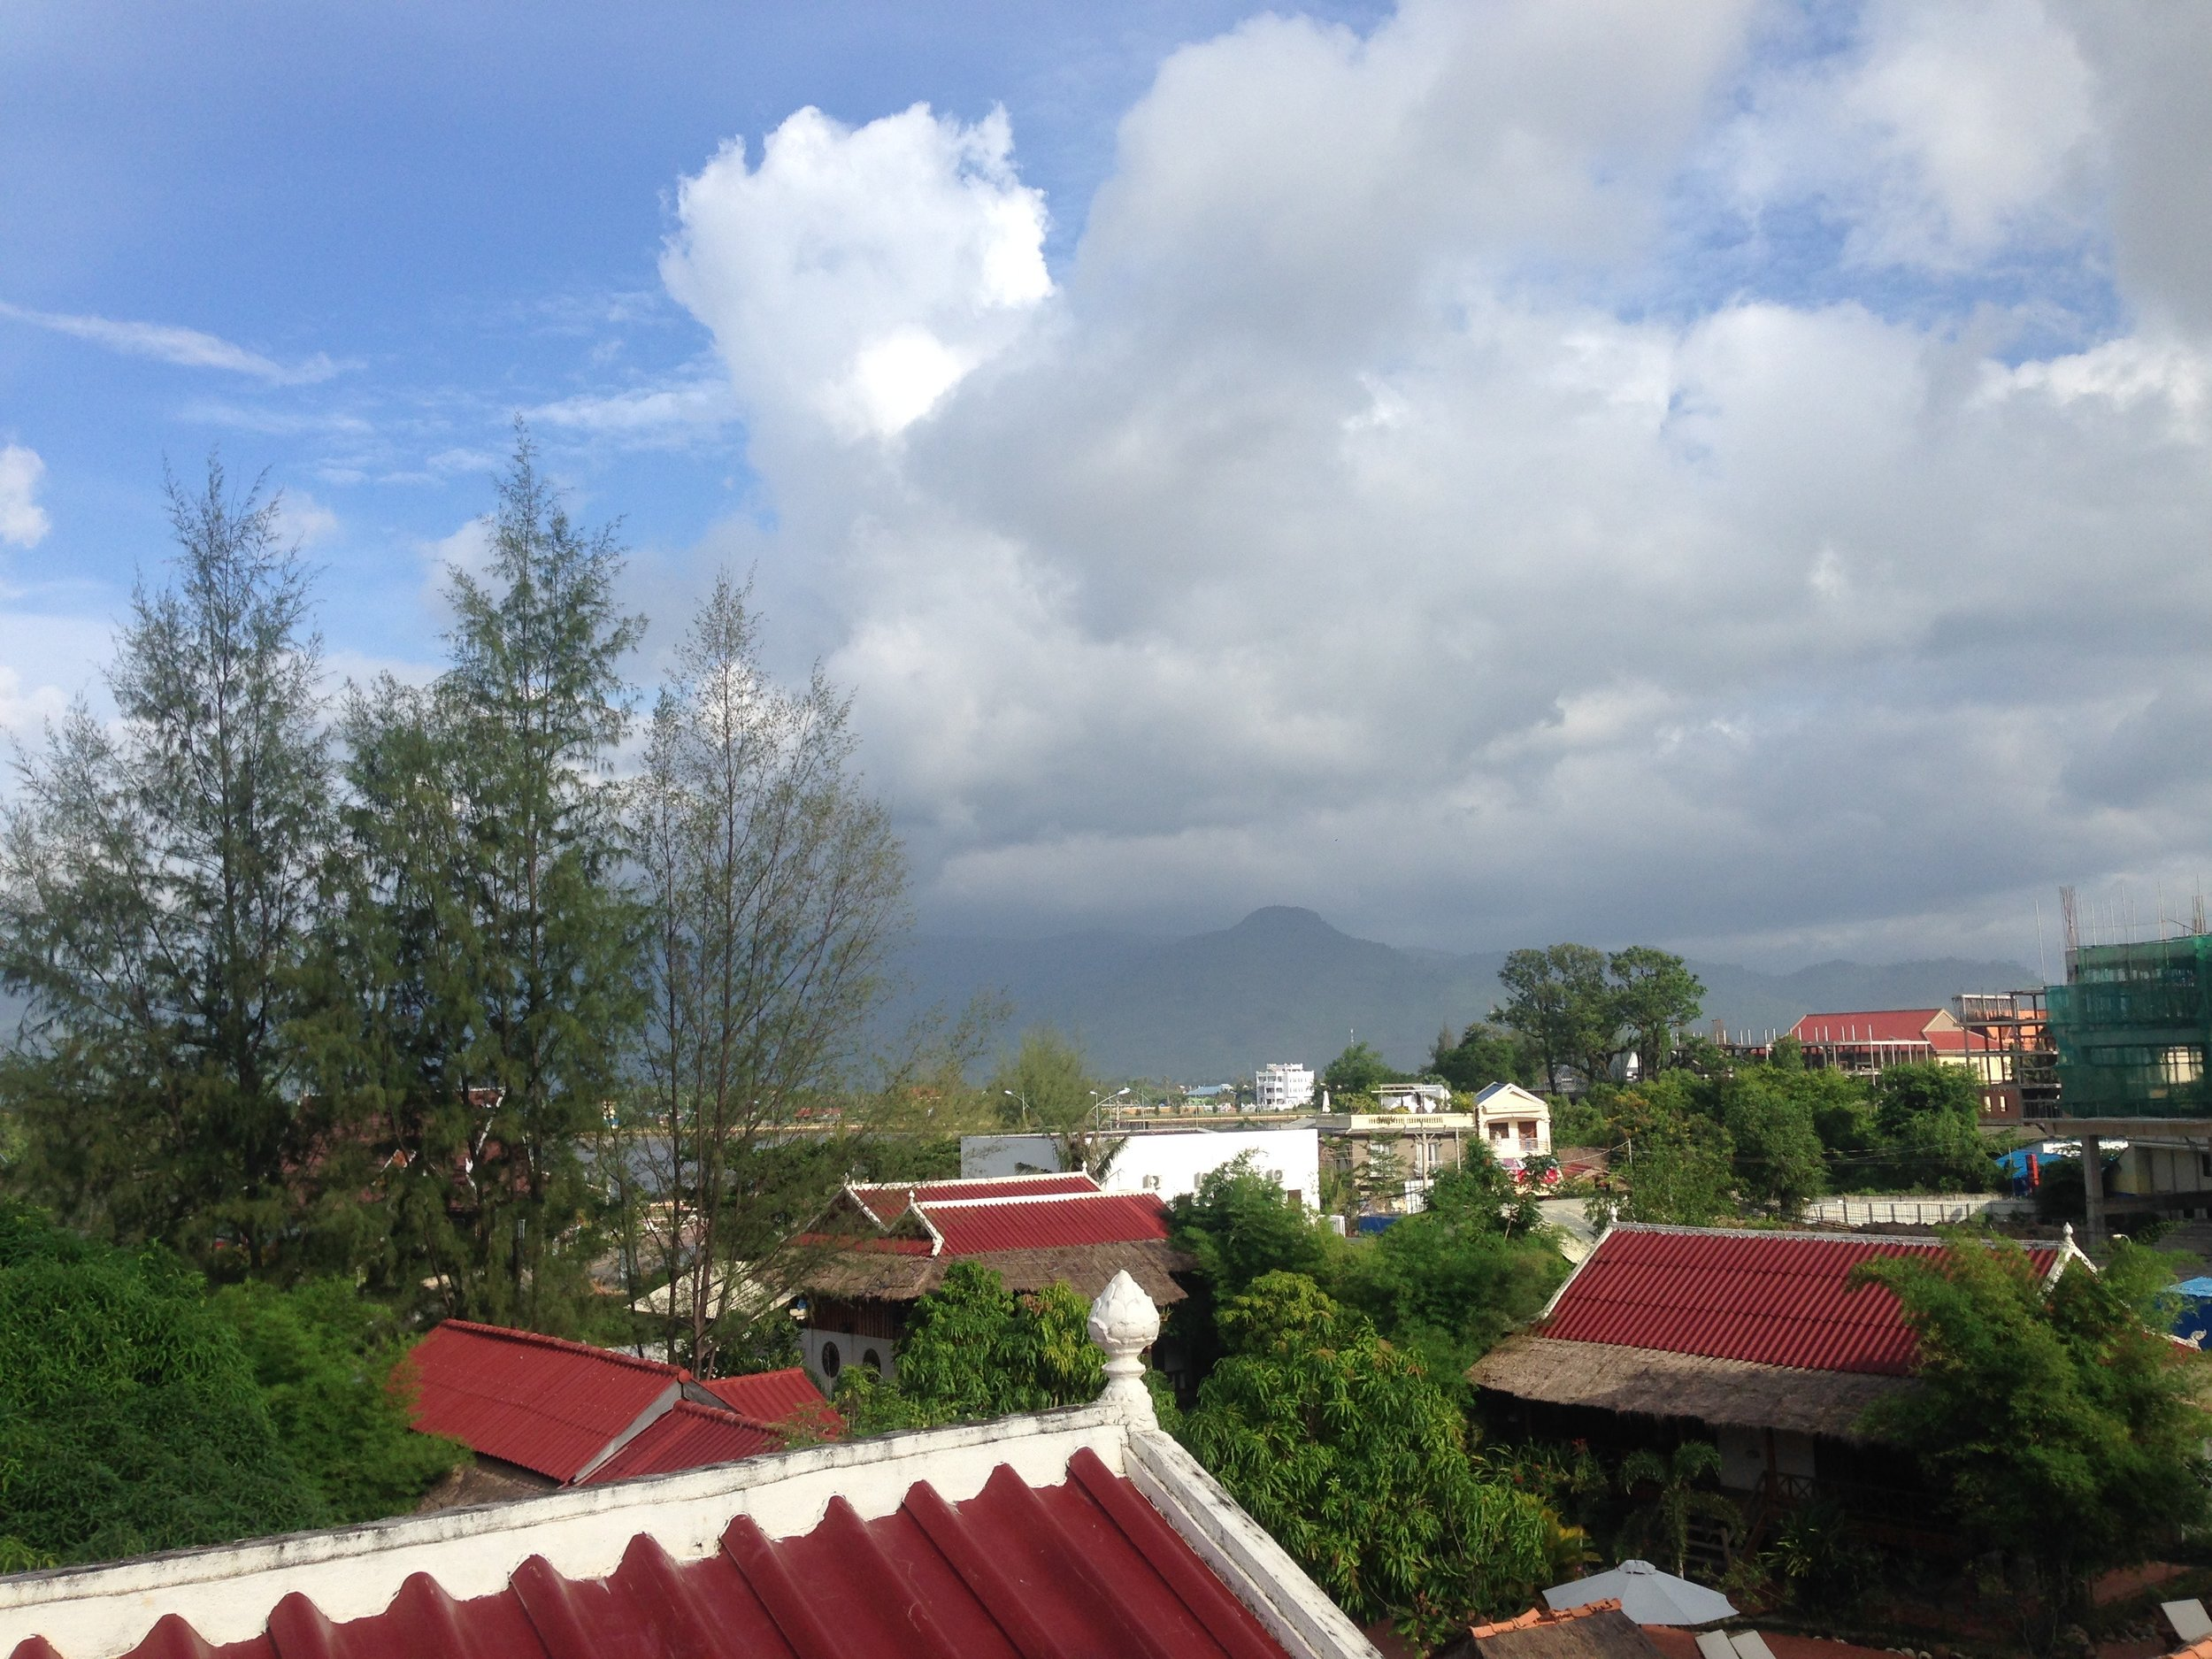 Rooftop vibes, looking at the misty Bokor Mountain